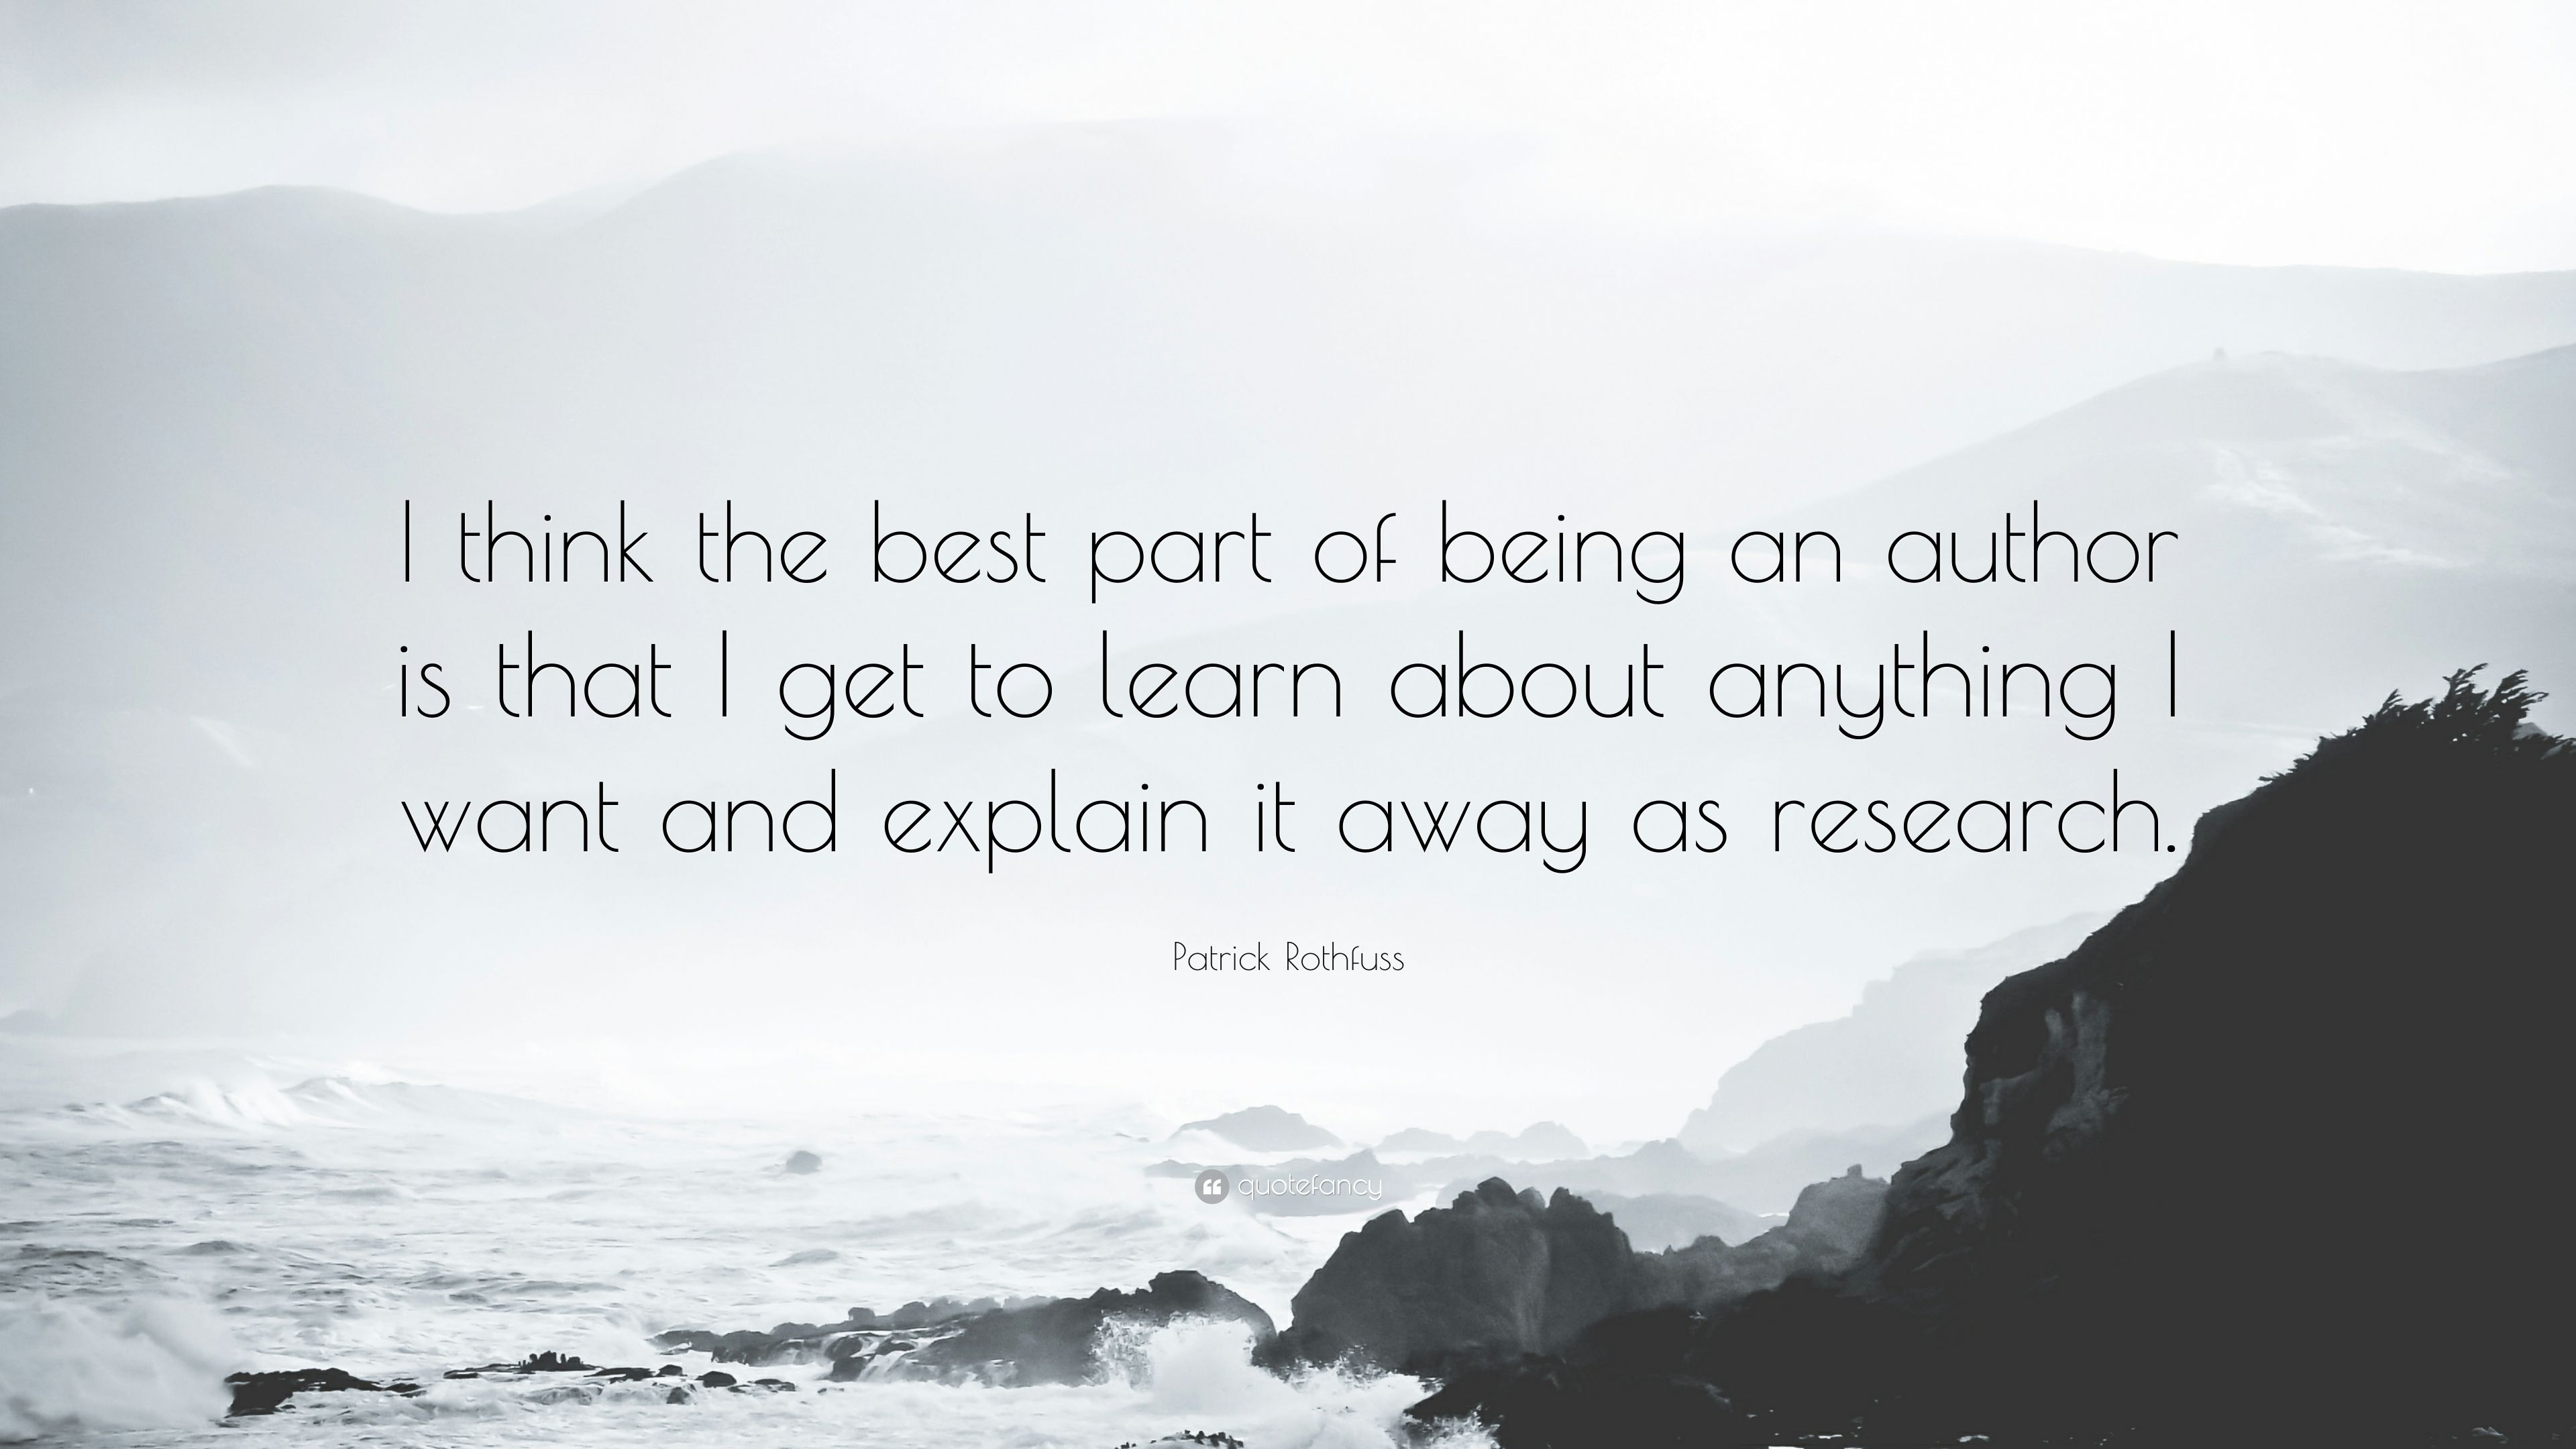 Patrick Rothfuss Quote I Think The Best Part Of Being An Author Is That I Get To Learn About Anything I Want And Explain It Away As Research 7 Wallpapers Quotefancy